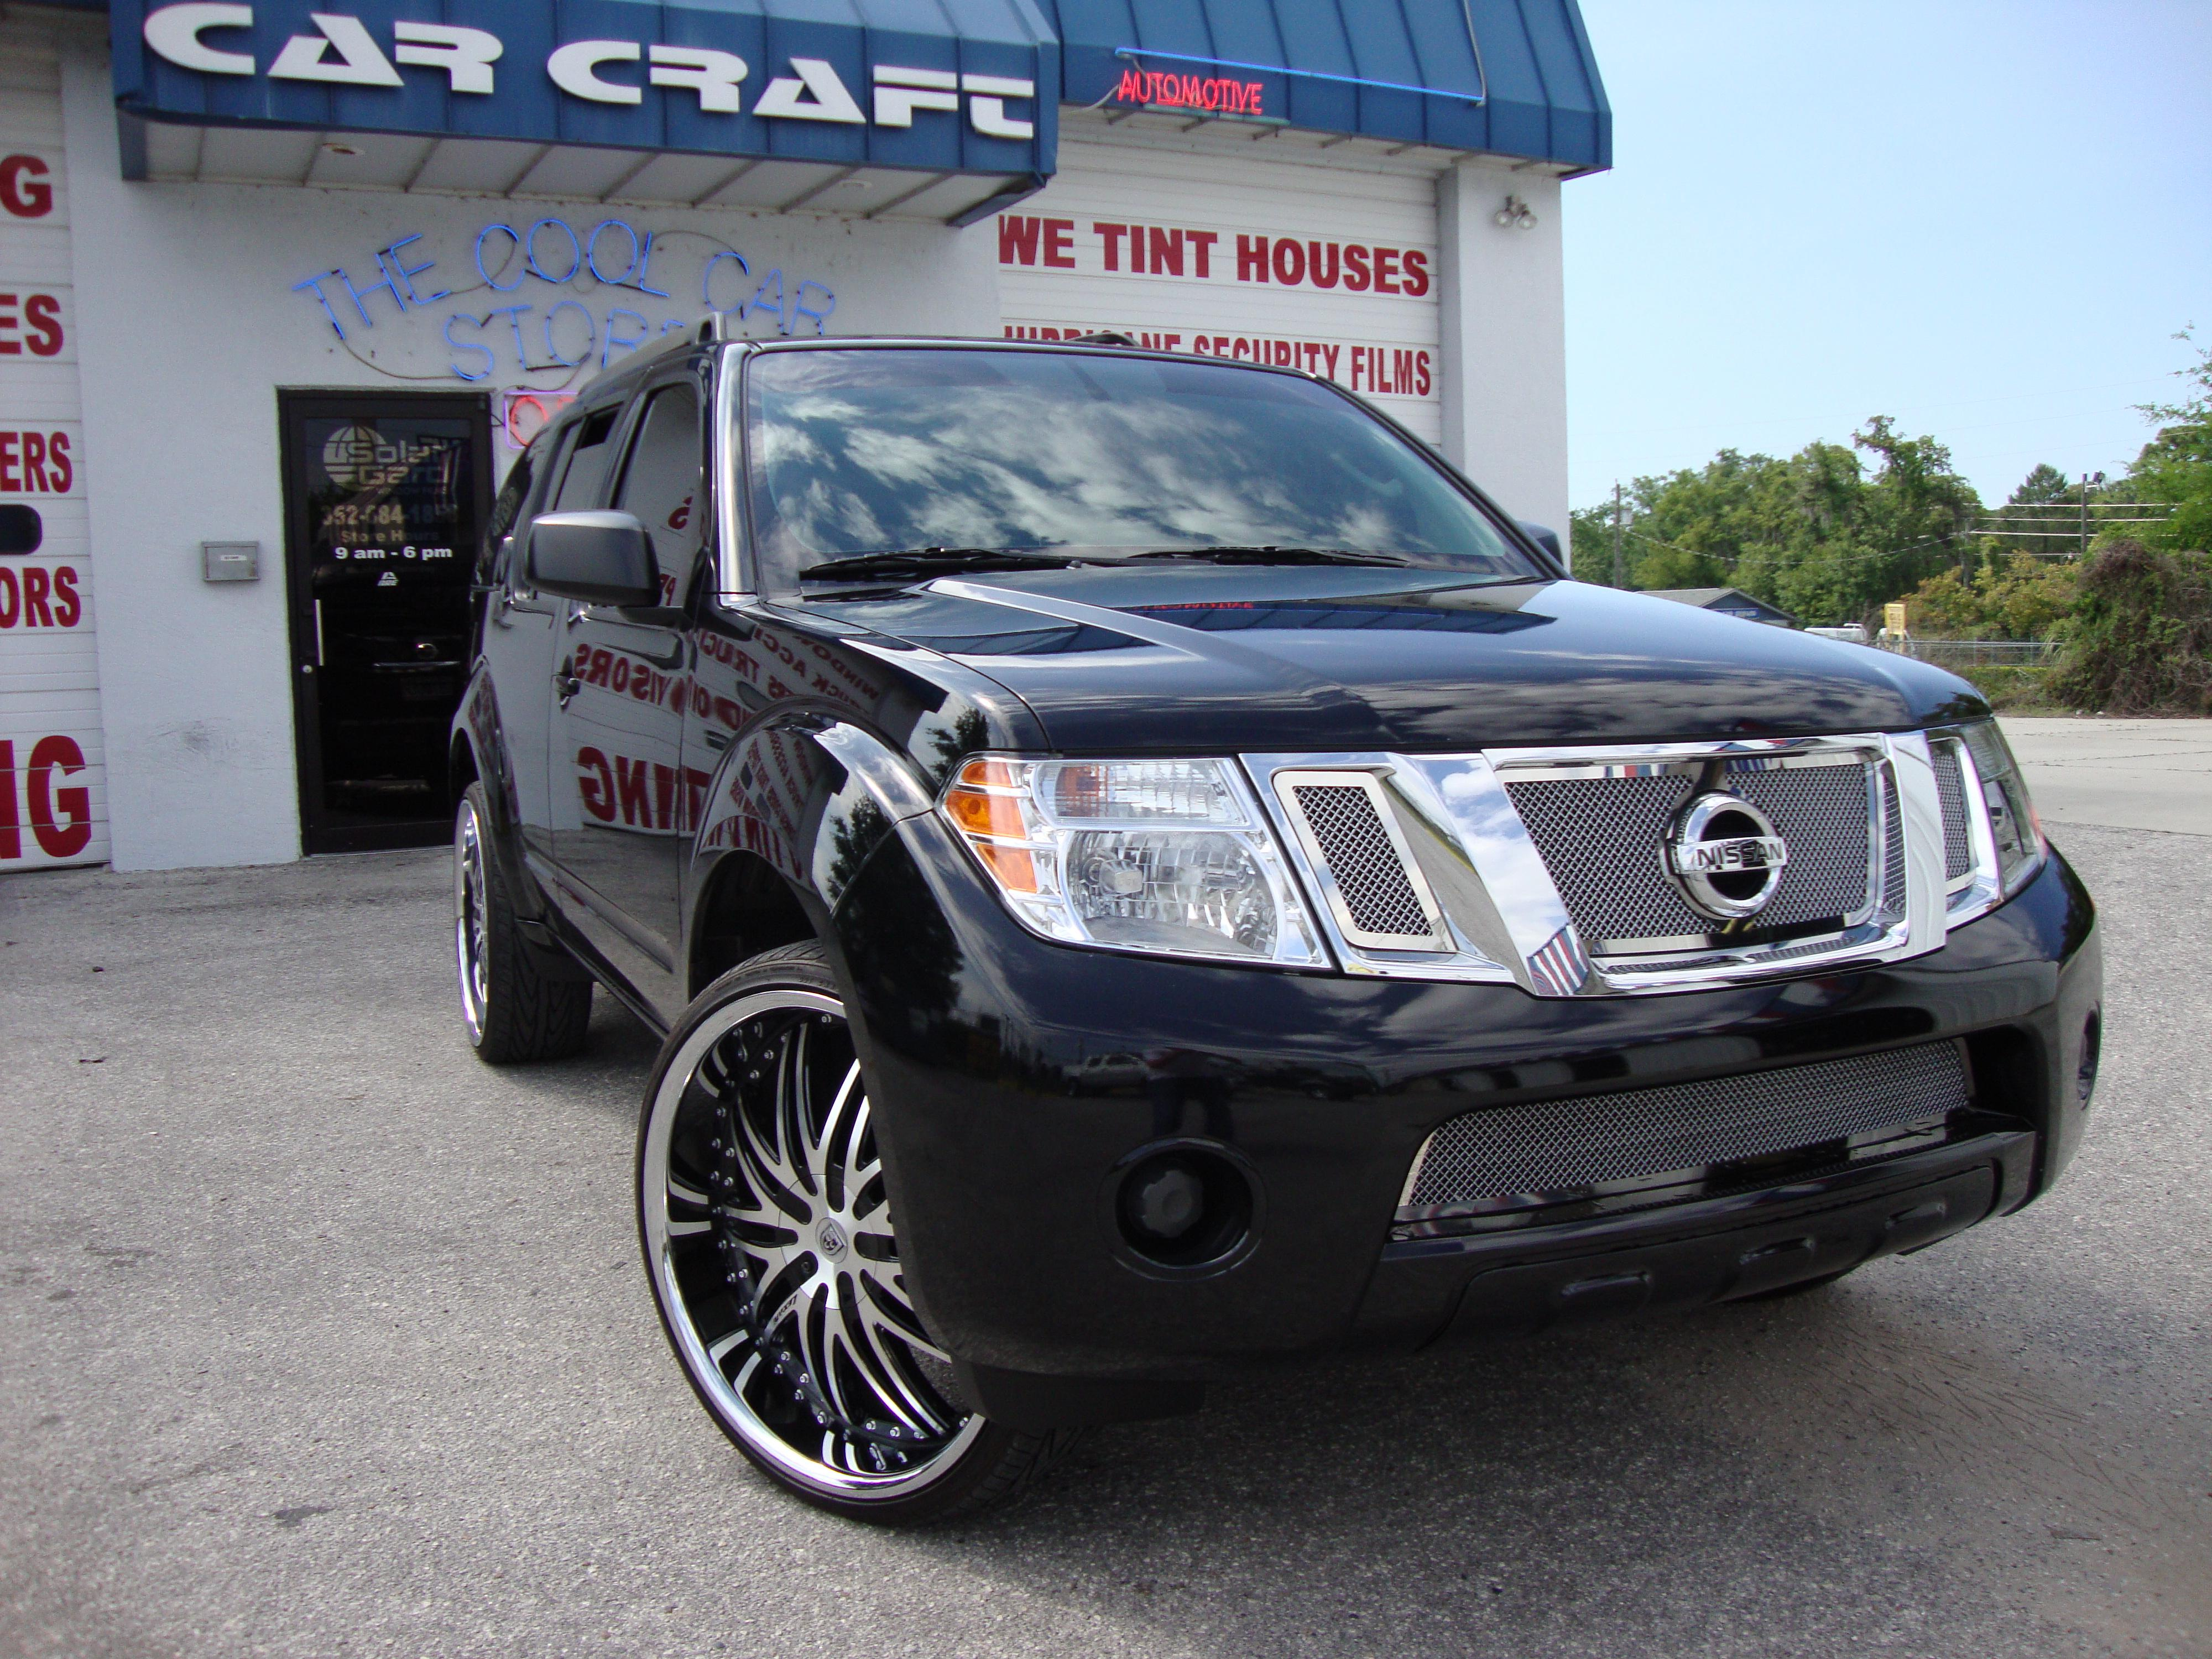 The_EraOfRivera's 2010 Nissan Pathfinder